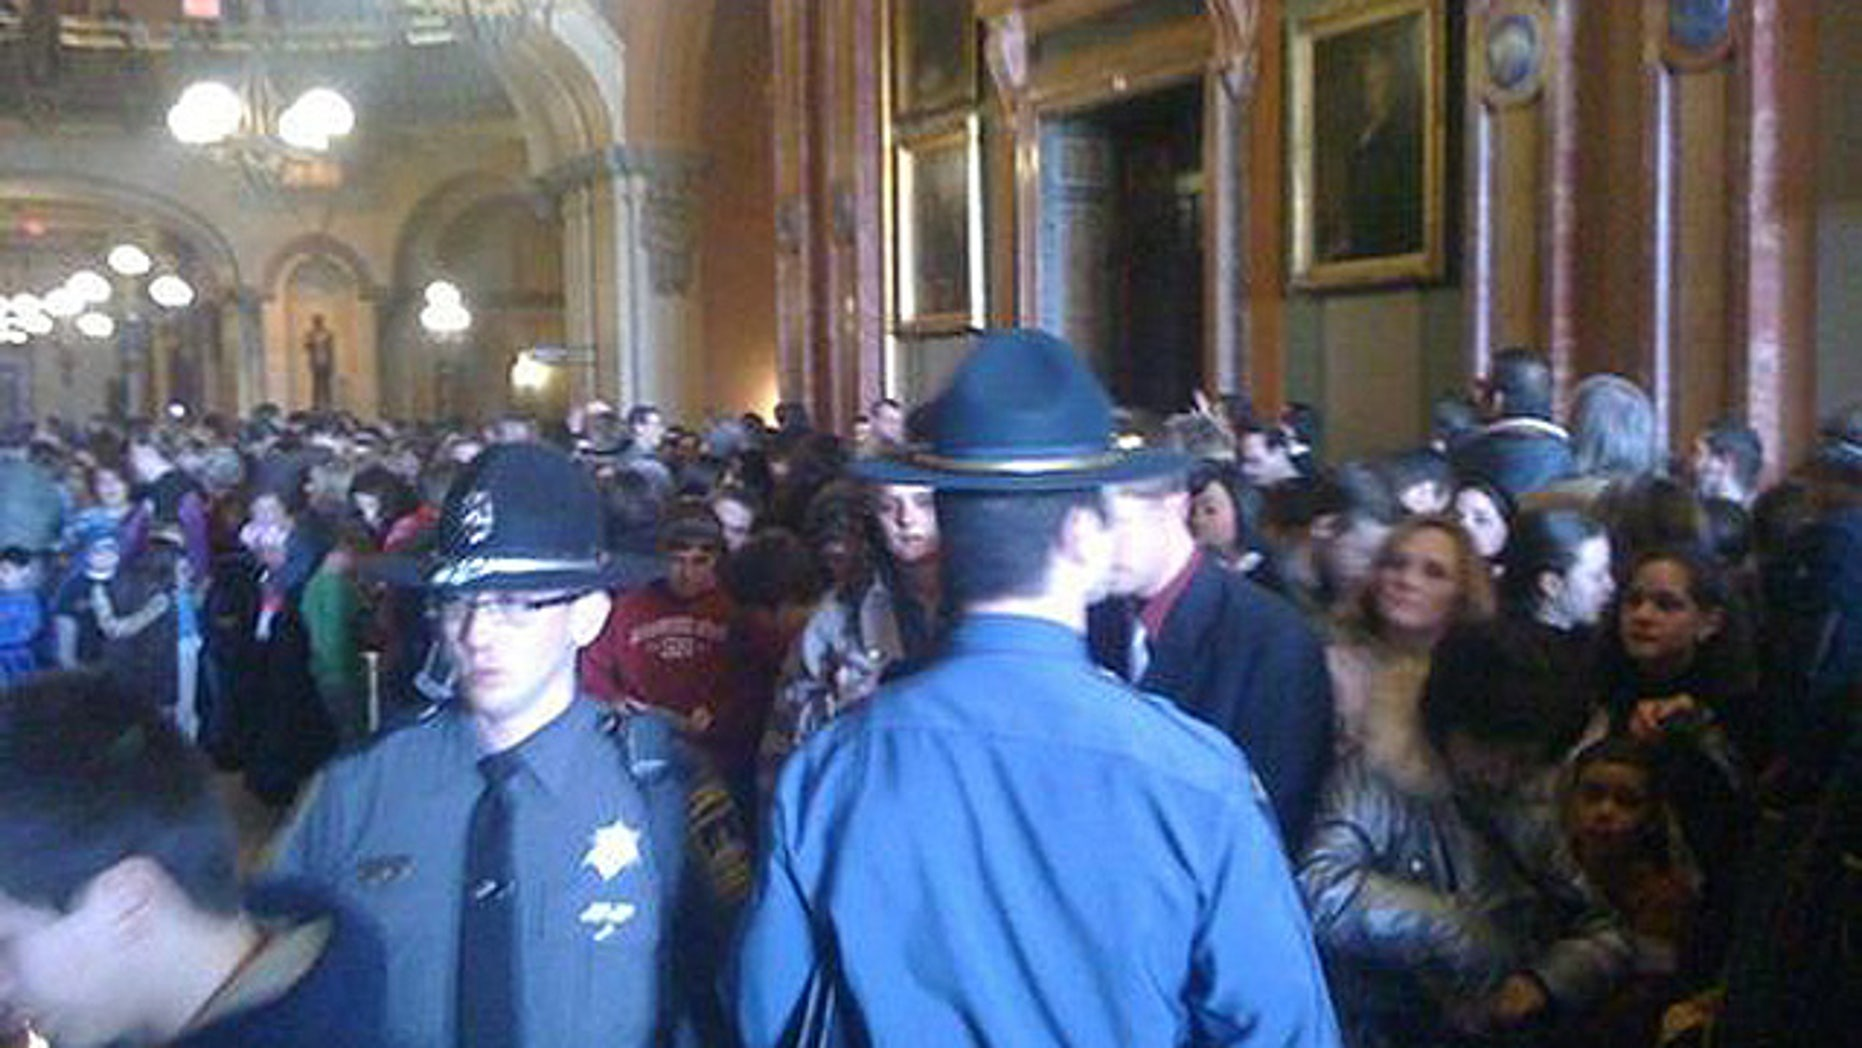 Thousands of people flooded the Illinois capital building in Springfield on Tuesday for an initial hearing for the bill, which has since been tabled. (IllinoisReview.com)